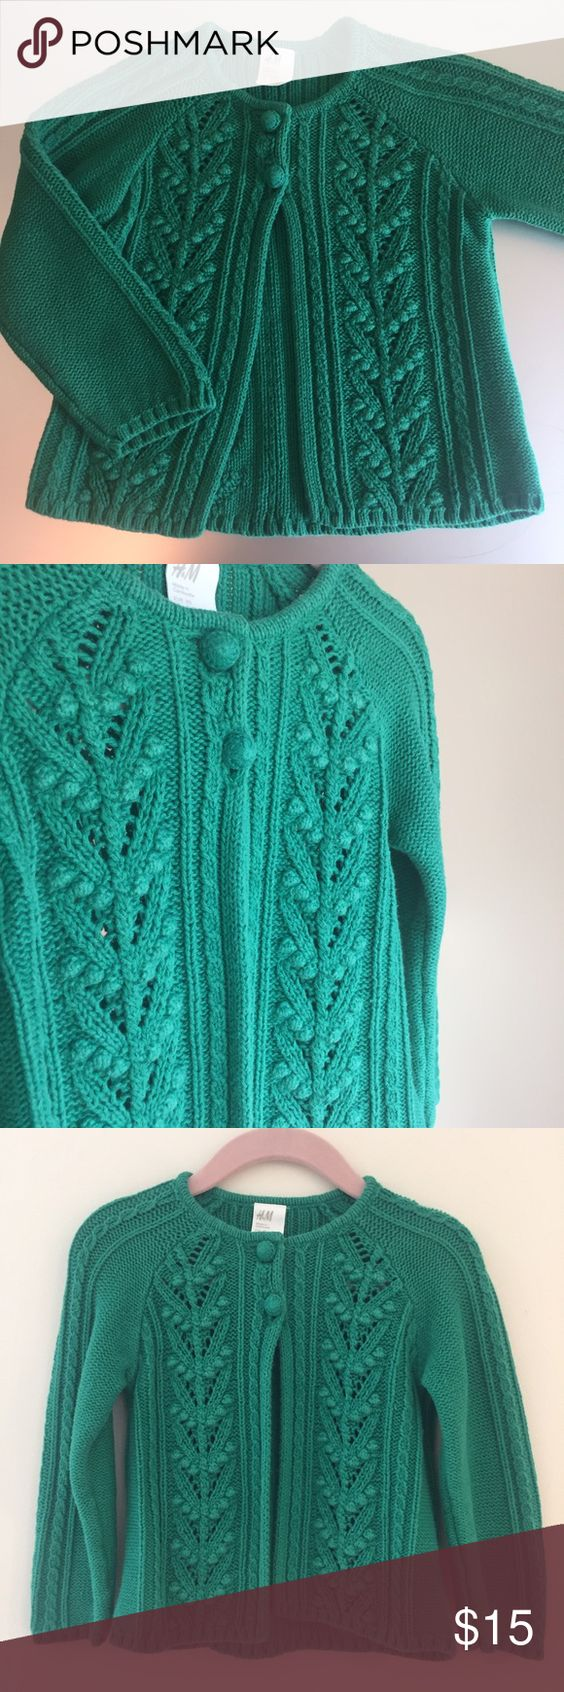 H&M Cable Knit Baby Cardigan H&M Cable Knit Baby Cardigan in green. 2 front knit covered buttons. 100% Cotton. Gently used and in Excellent Condition. H&M Shirts & Tops Sweaters